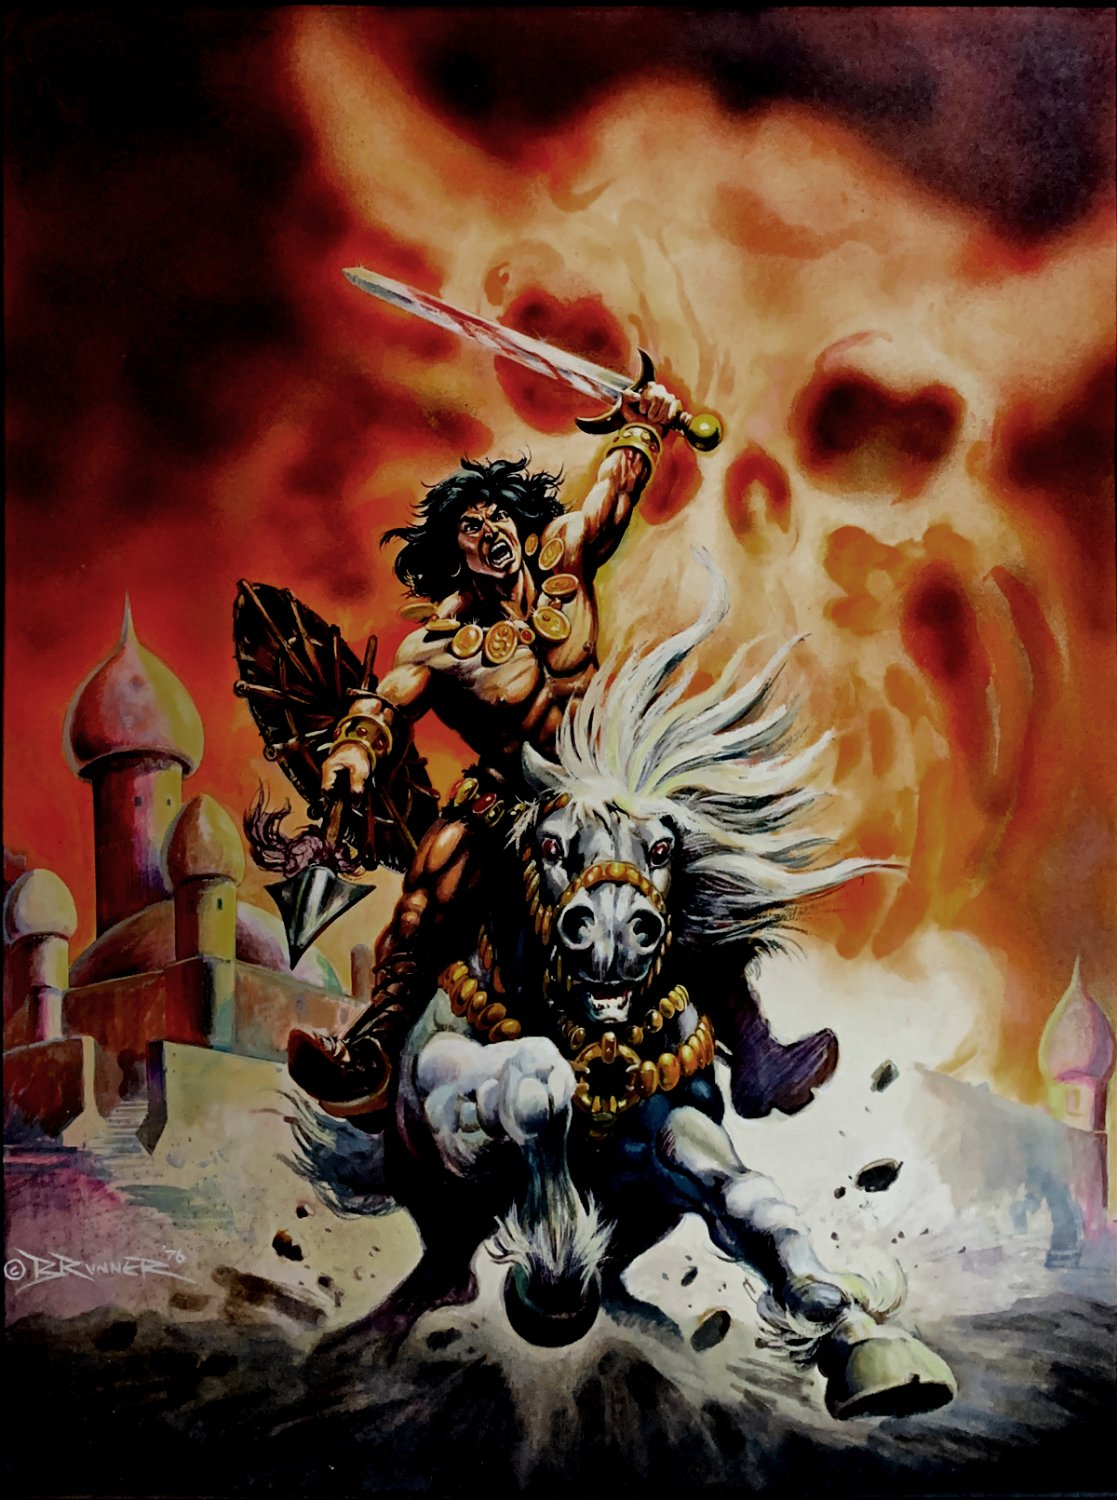 Savage Sword of Conan #8 & Conan Saga #32 Stunning 'RARE EARLY' Cover Painting Also Used For A Poster (LARGE ART) 1975